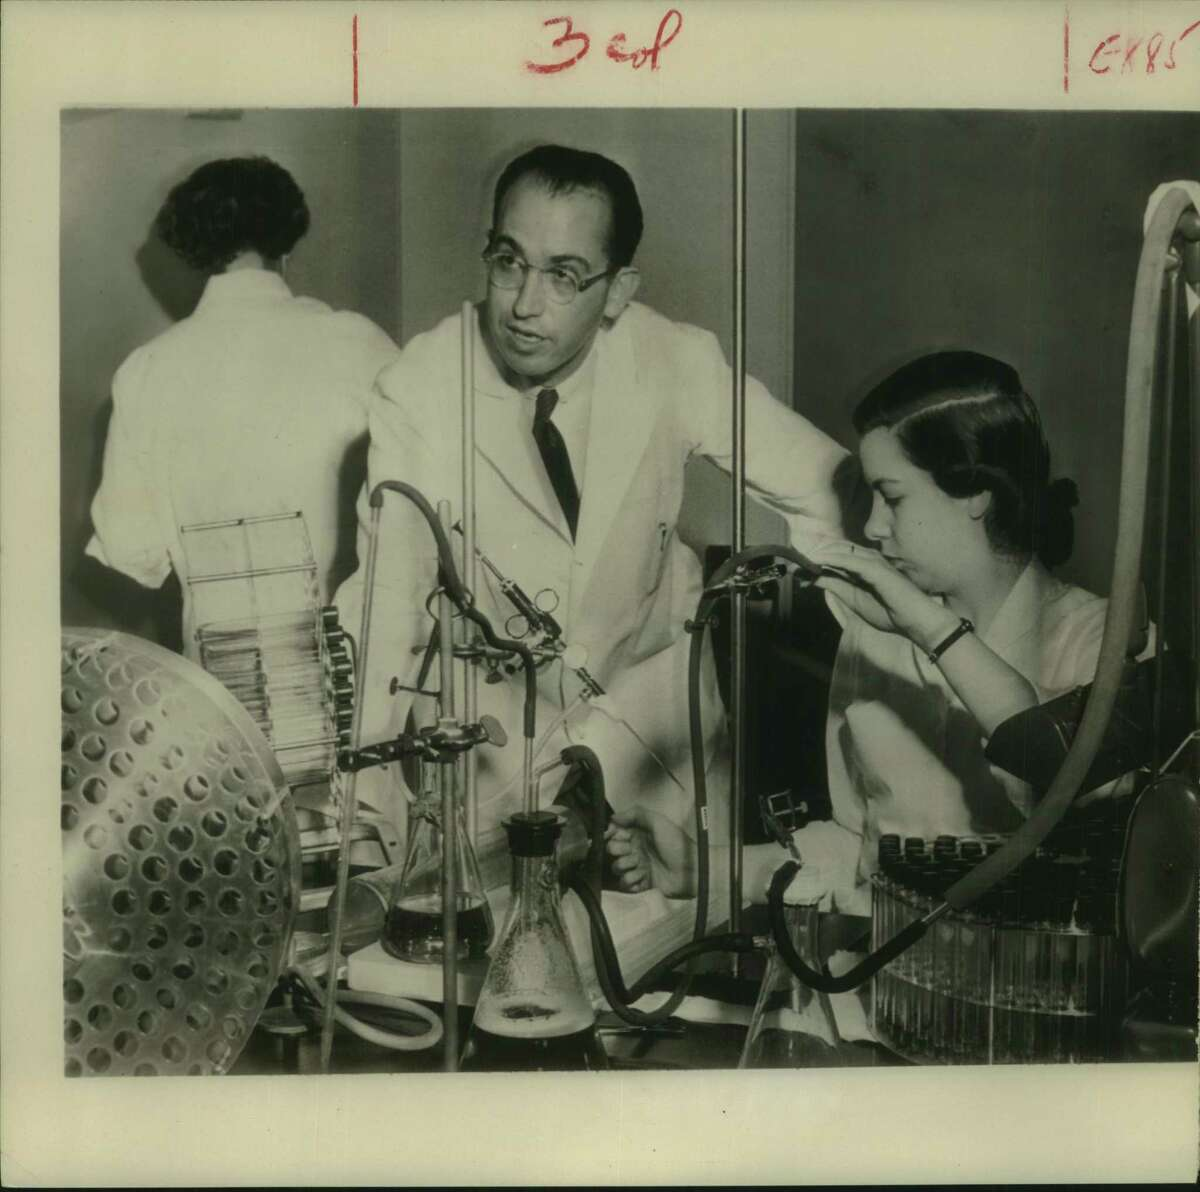 Jonas Salk and nurses work on polio vaccine in his lab. Salk later developed a vaccine for polio that was eventually distributed in Montgomery County.